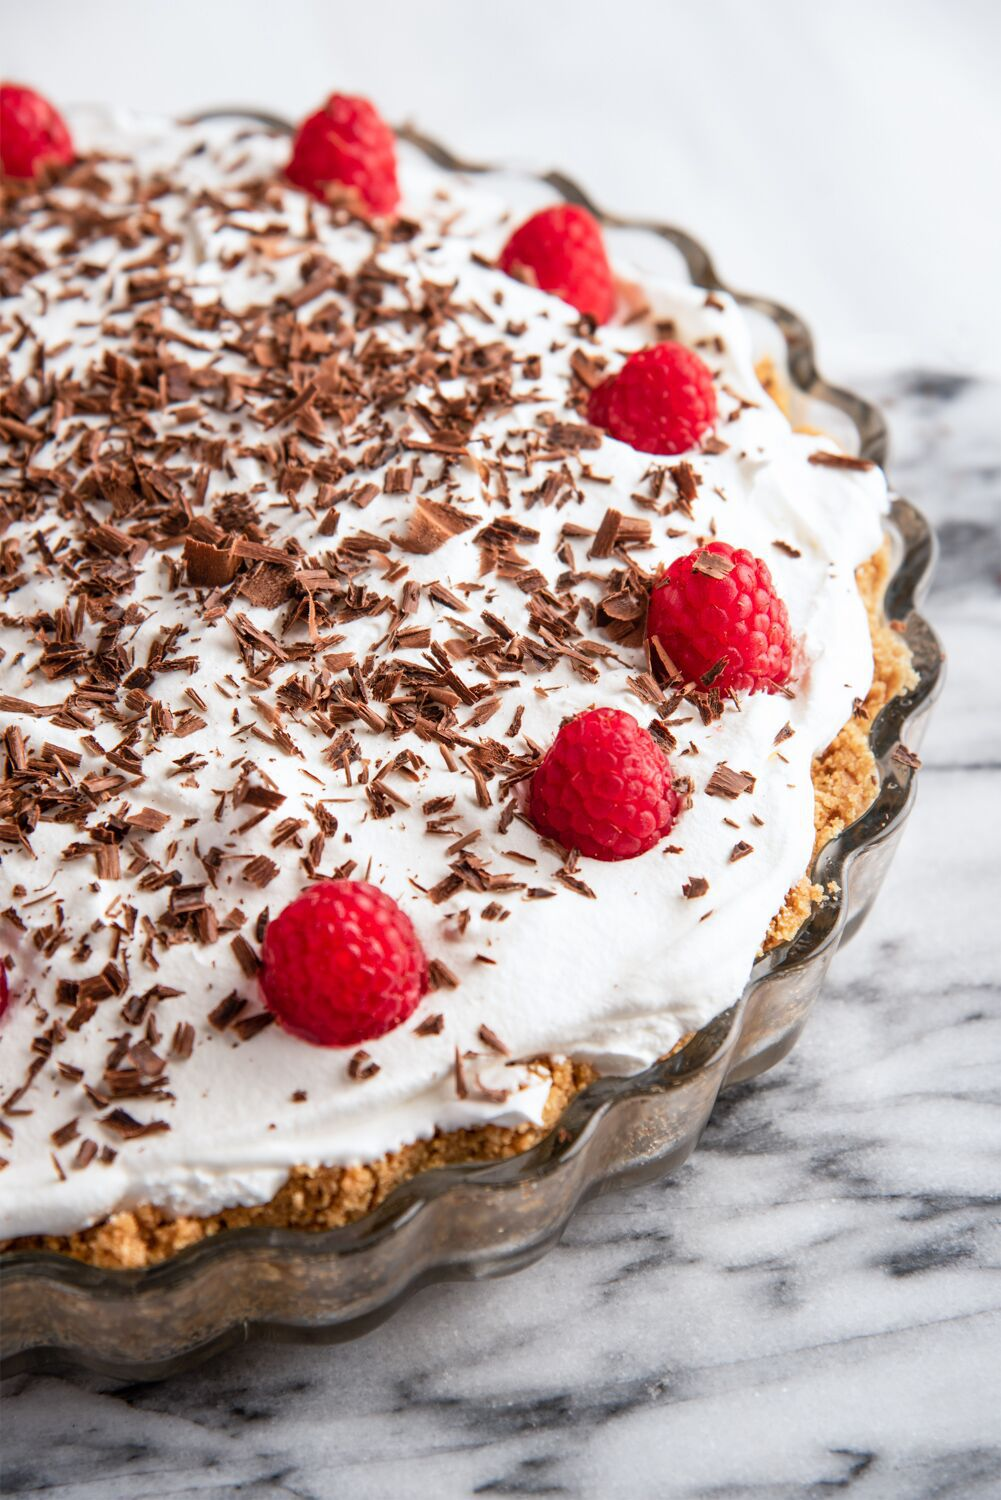 Easy Chocolate Pudding Pie Recipe for Kids